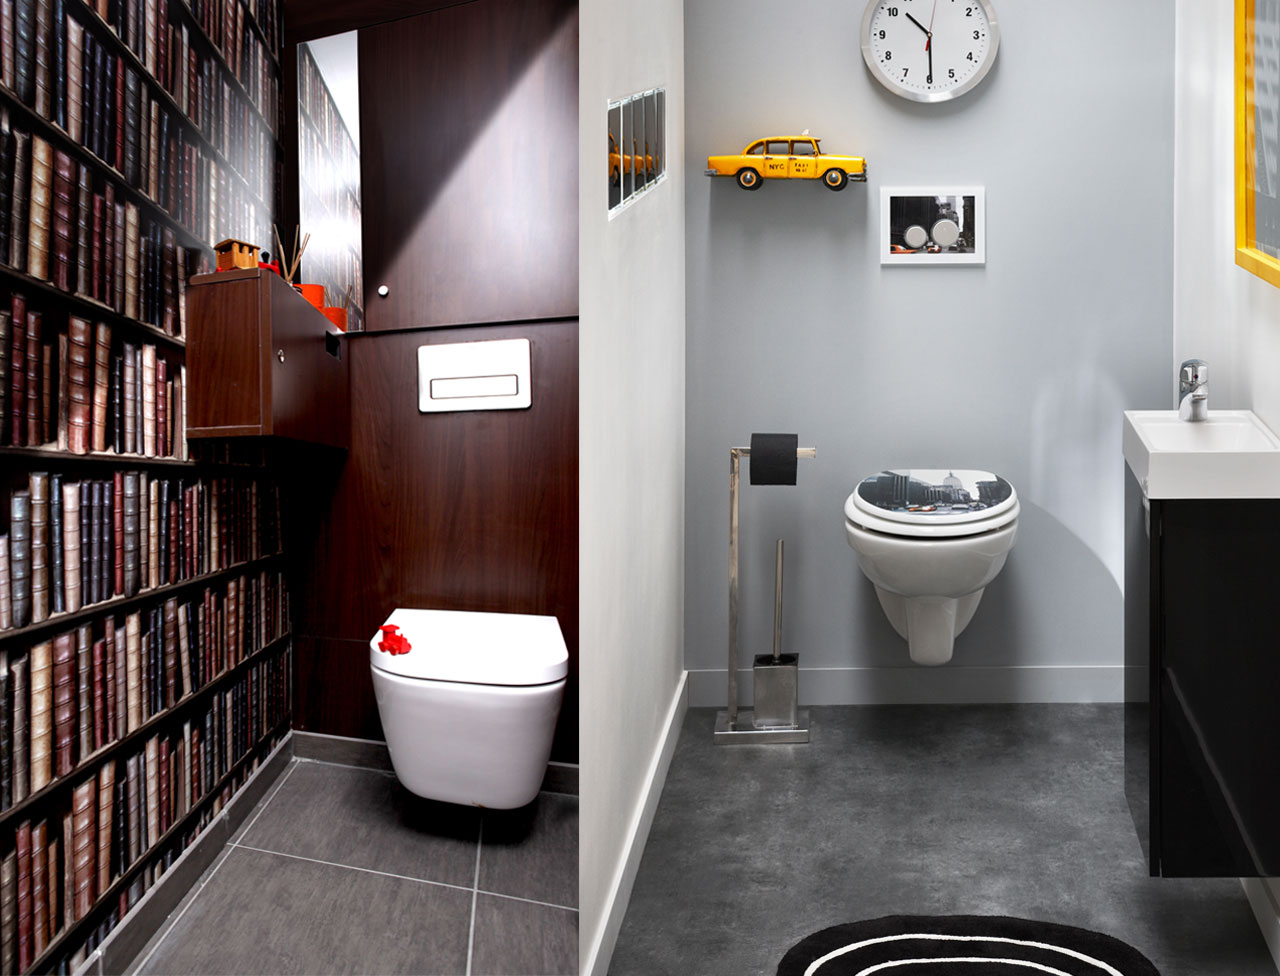 Wiki sanitaires les toilettes for Idee deco wc design